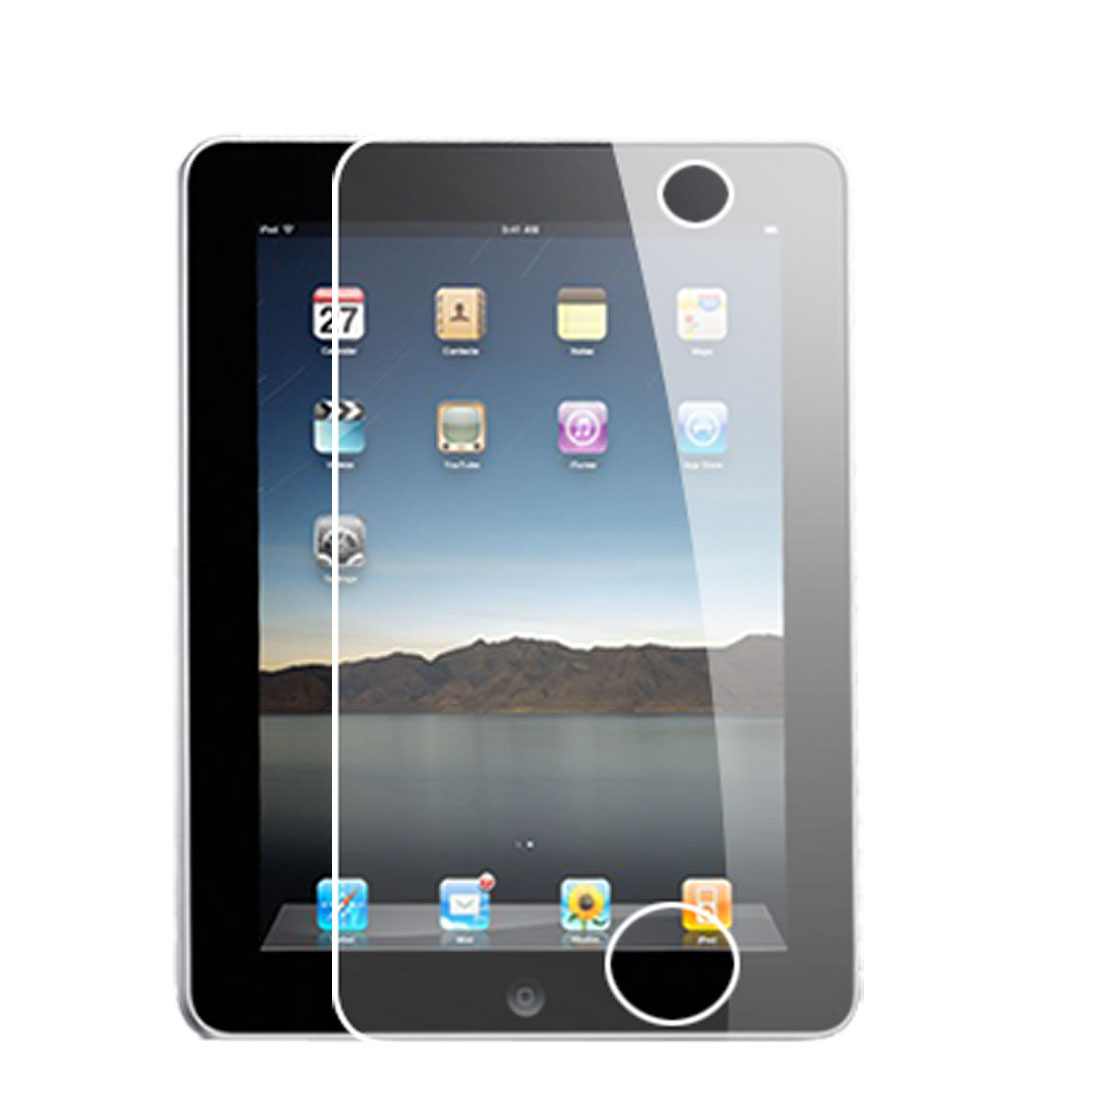 Clear Plastic Touch Screen Guard Protector for Apple iPad 2G